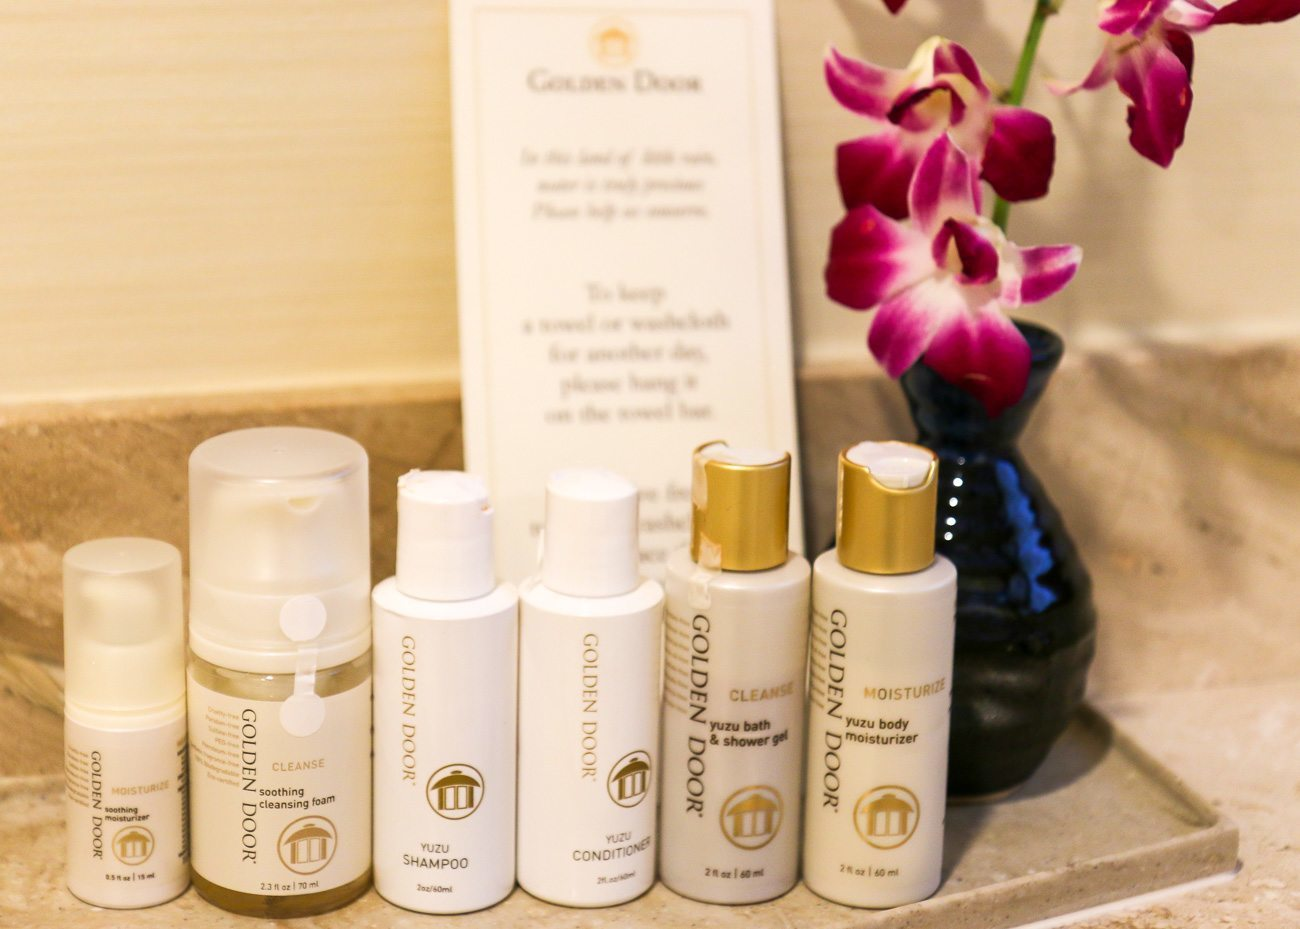 These are the Golden Door skincare products that are left in the rooms for guests to try. They are AMAZING.